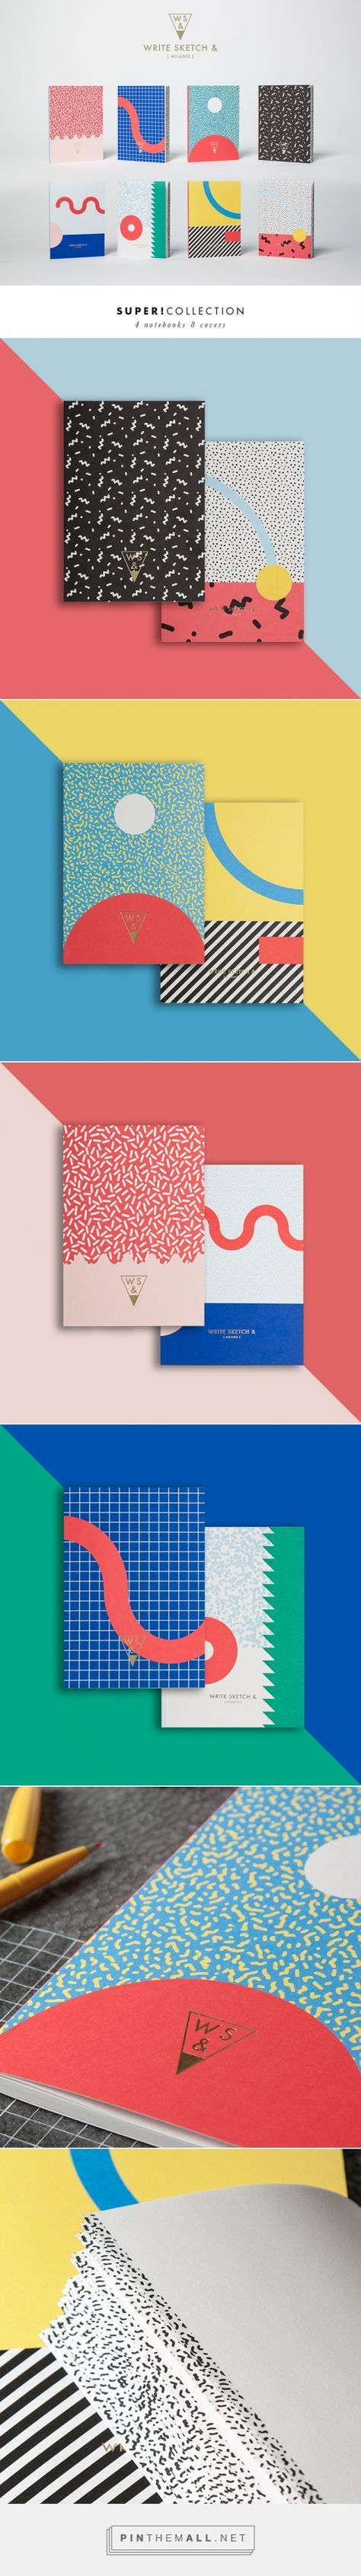 Write Sketch &   Super Collection   Notebooks on Behance - created via http://pinthemall.net